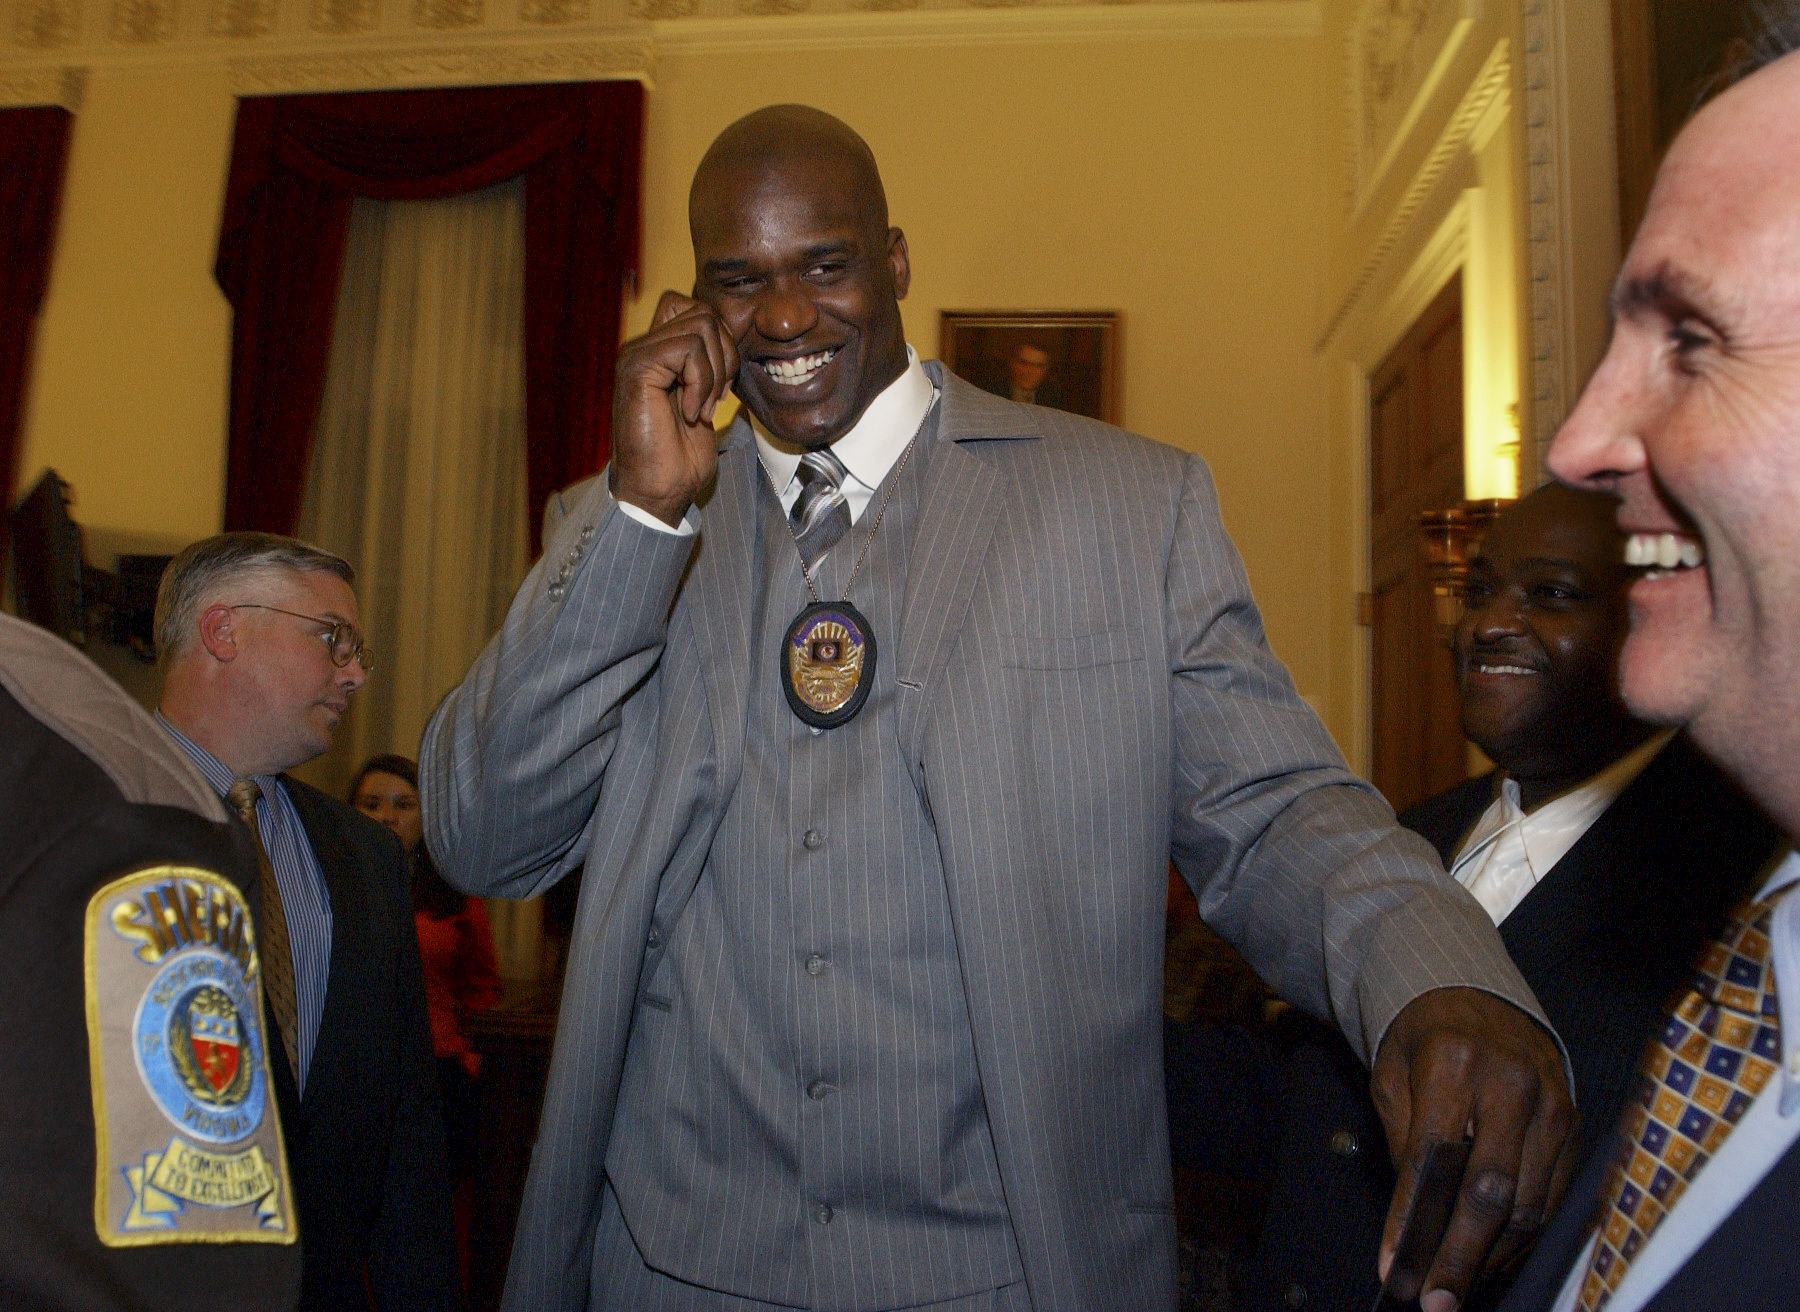 Even before Tuesday's roadside assistance, Shaquille O'Neal has a history of helping strangers and law enforcment.